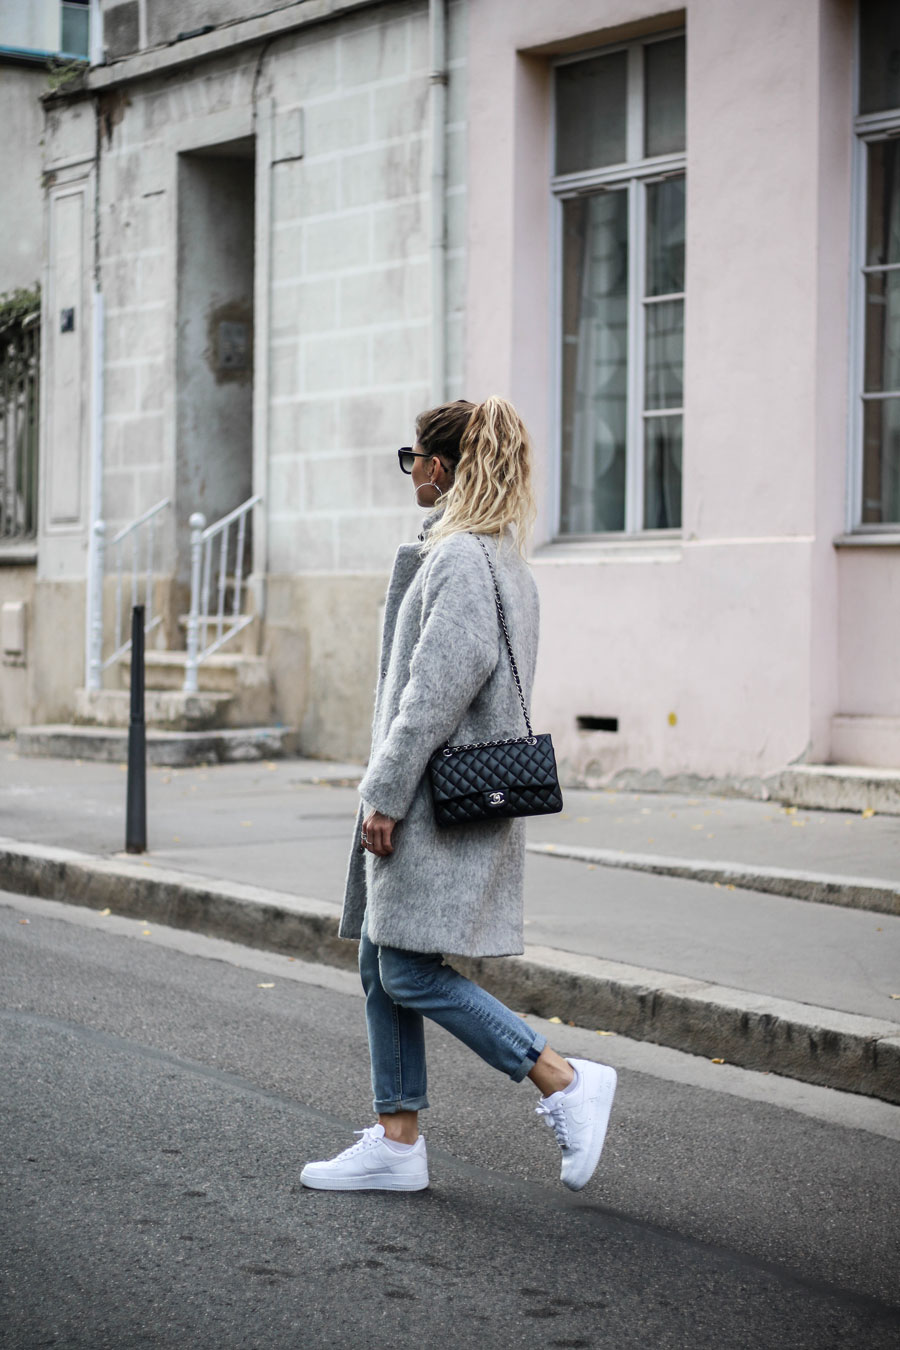 check out a64b1 5a09a Air Force 1 - Marie and Mood - Blog mode et lifestyle Lyon